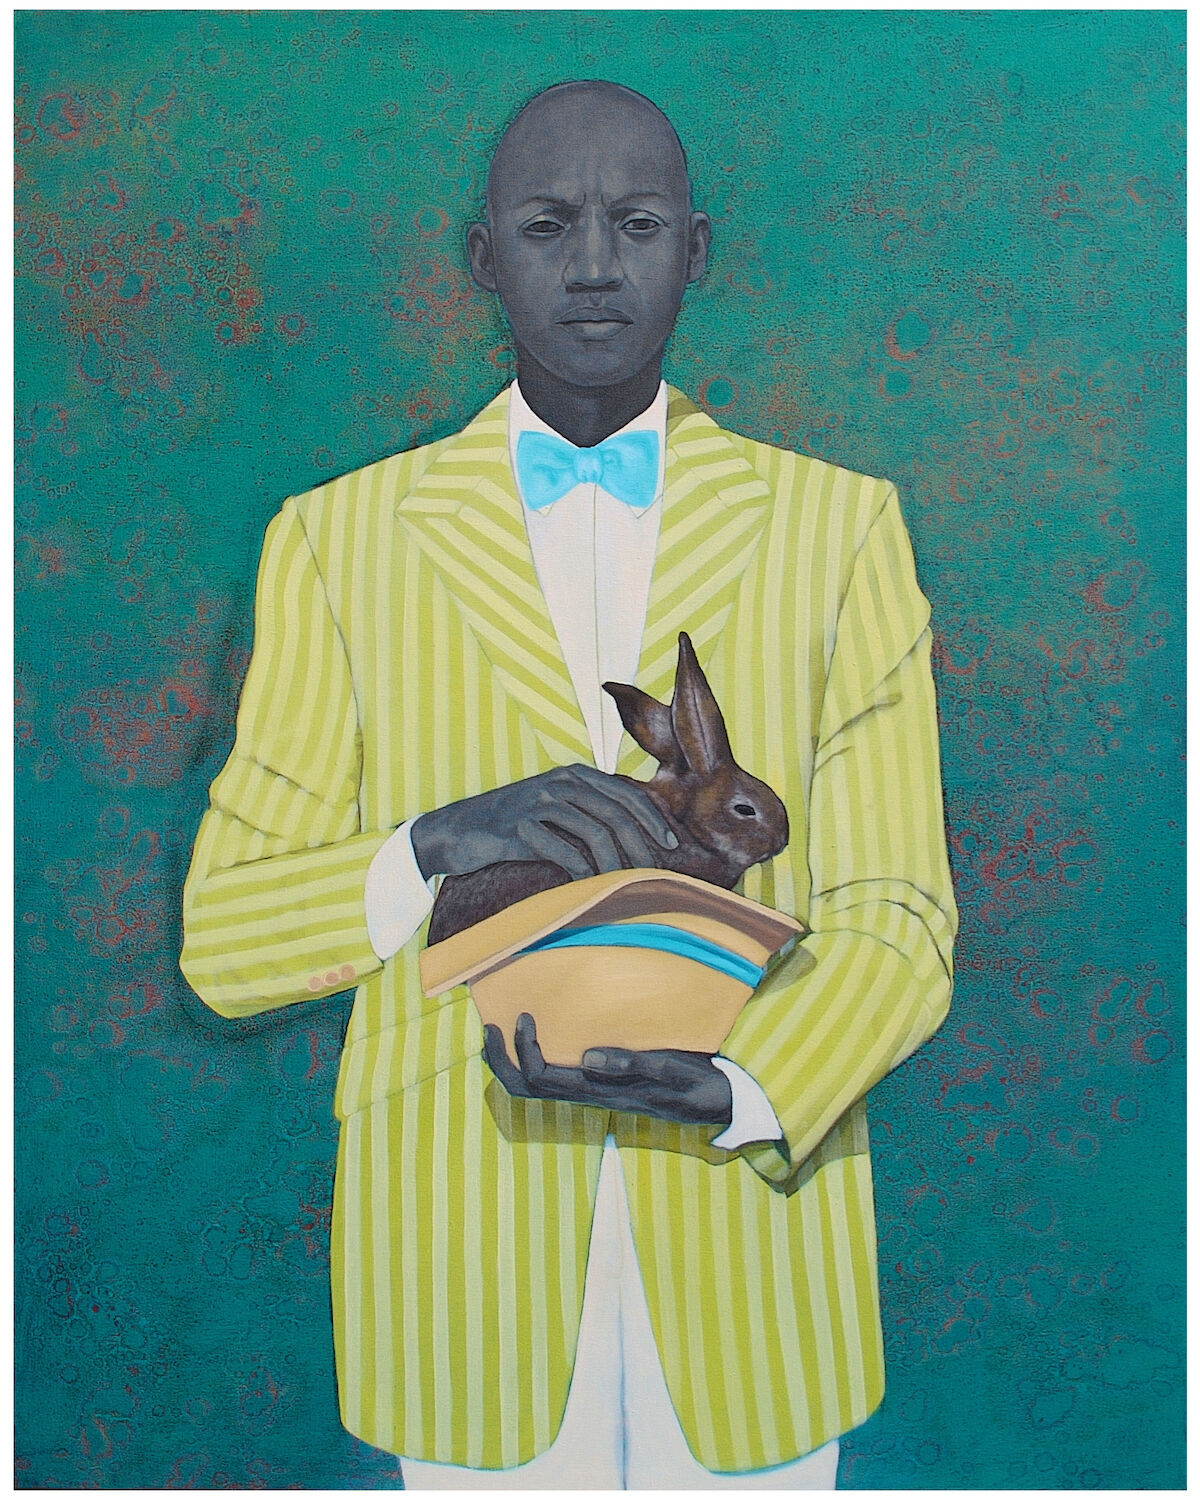 Amy Sherald, The Rabbit in the Hat, 2009. The Baltimore Museum of Art: Collection of Anne L. Stone, Baltimore: Promised gift to The Baltimore Museum of Art.